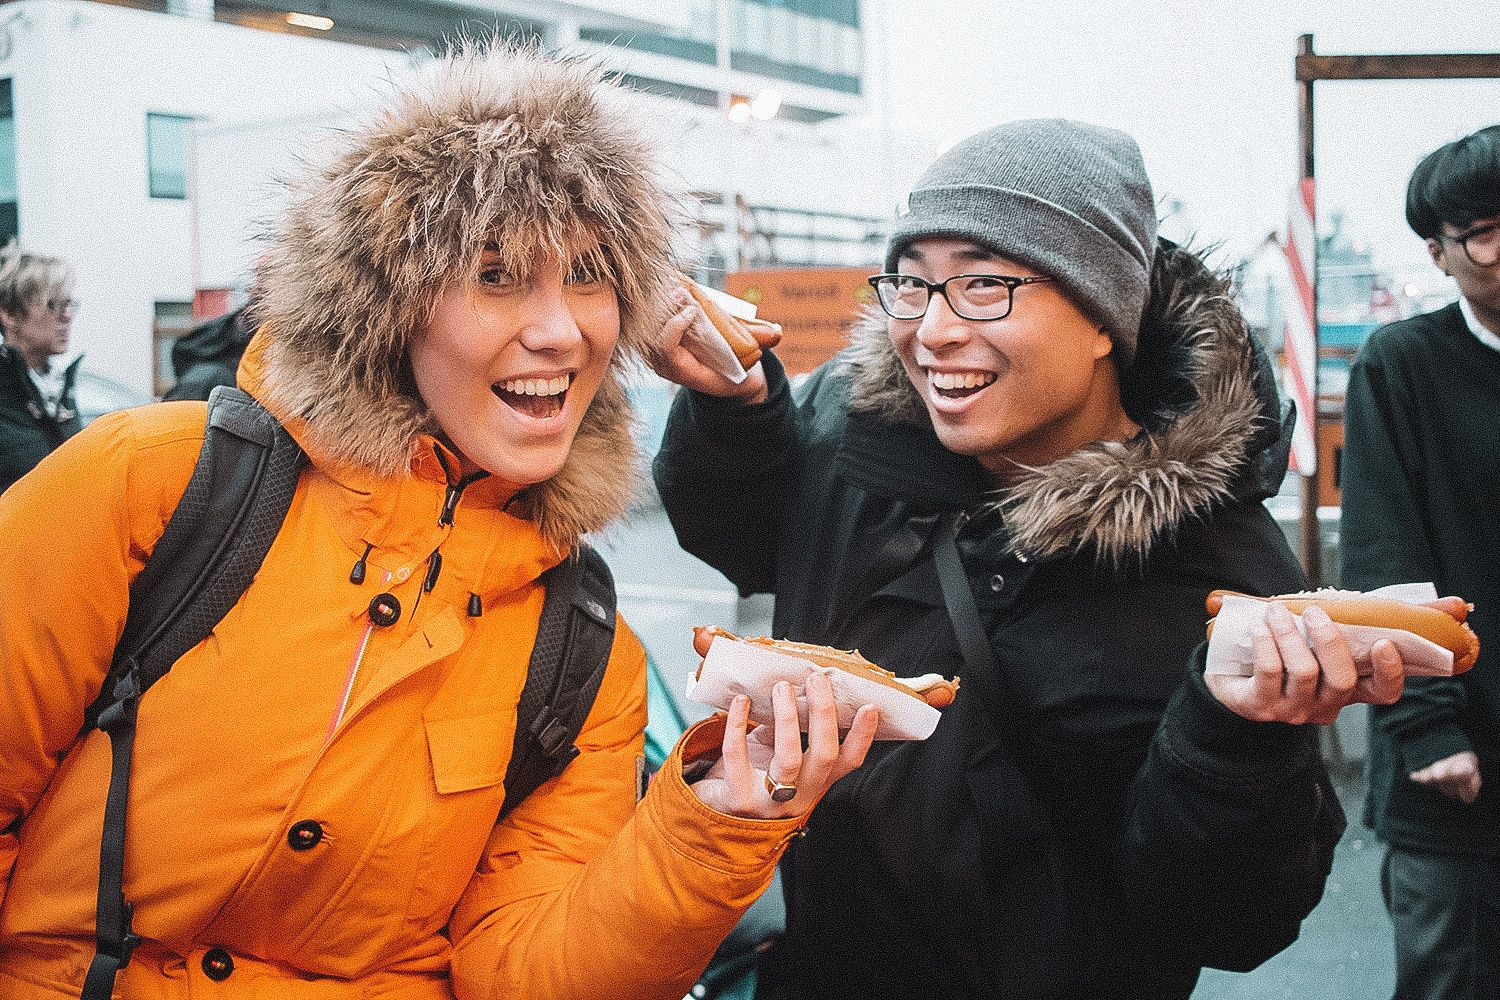 Enjoying Iceland's famous hot dogs on the Reykjavik Food Walk tour